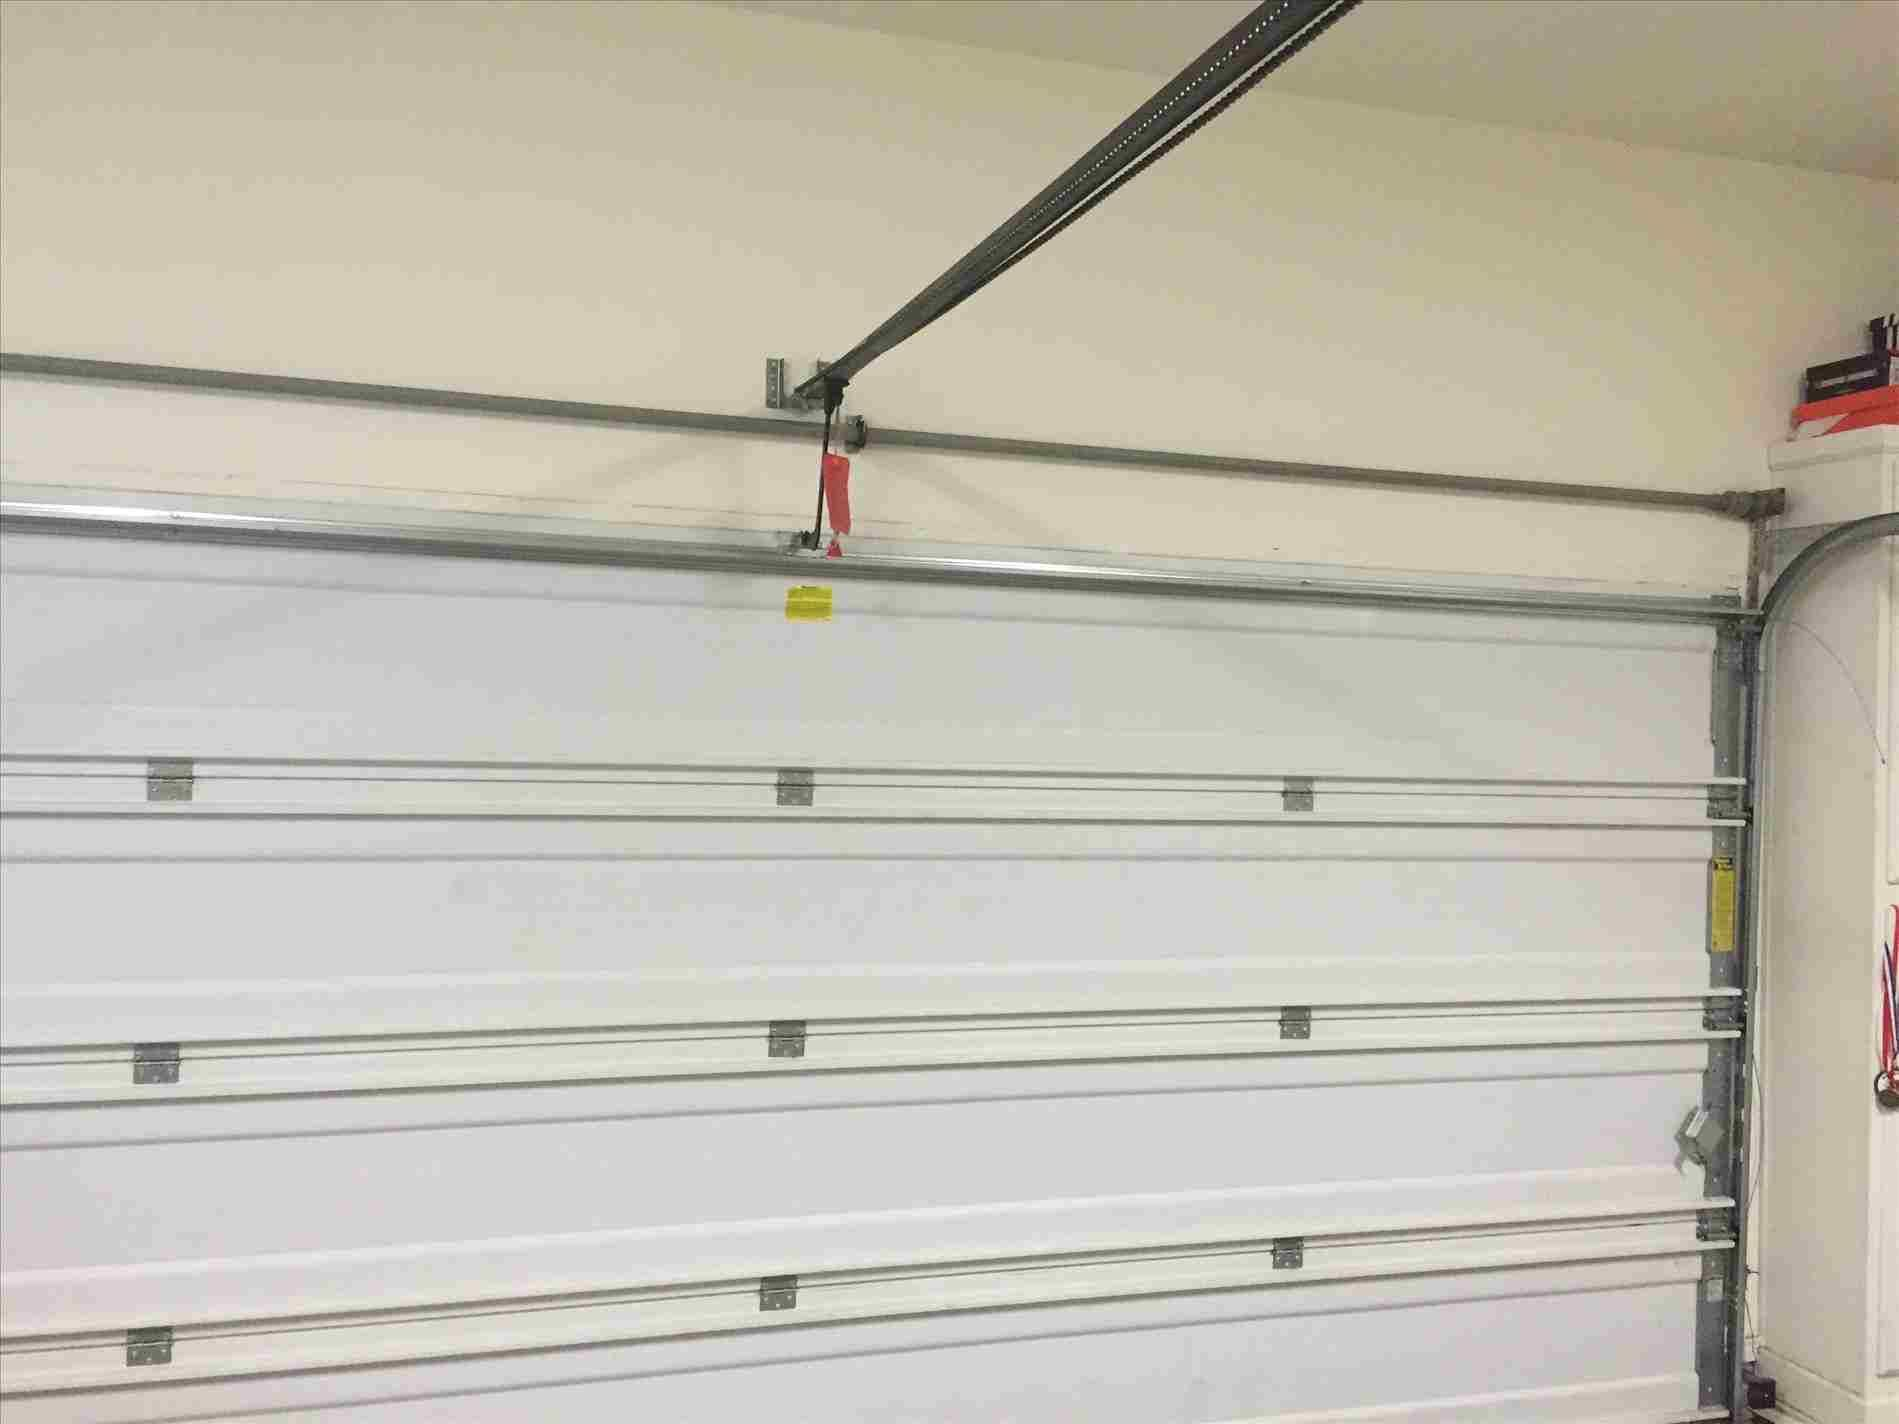 Wayne Dalton Garage Door Repair Uncategorized Wayne Dalton Taupe Garage Doors Stun Garage Door Springs Garage Door Installation Garage Door Panel Replacement